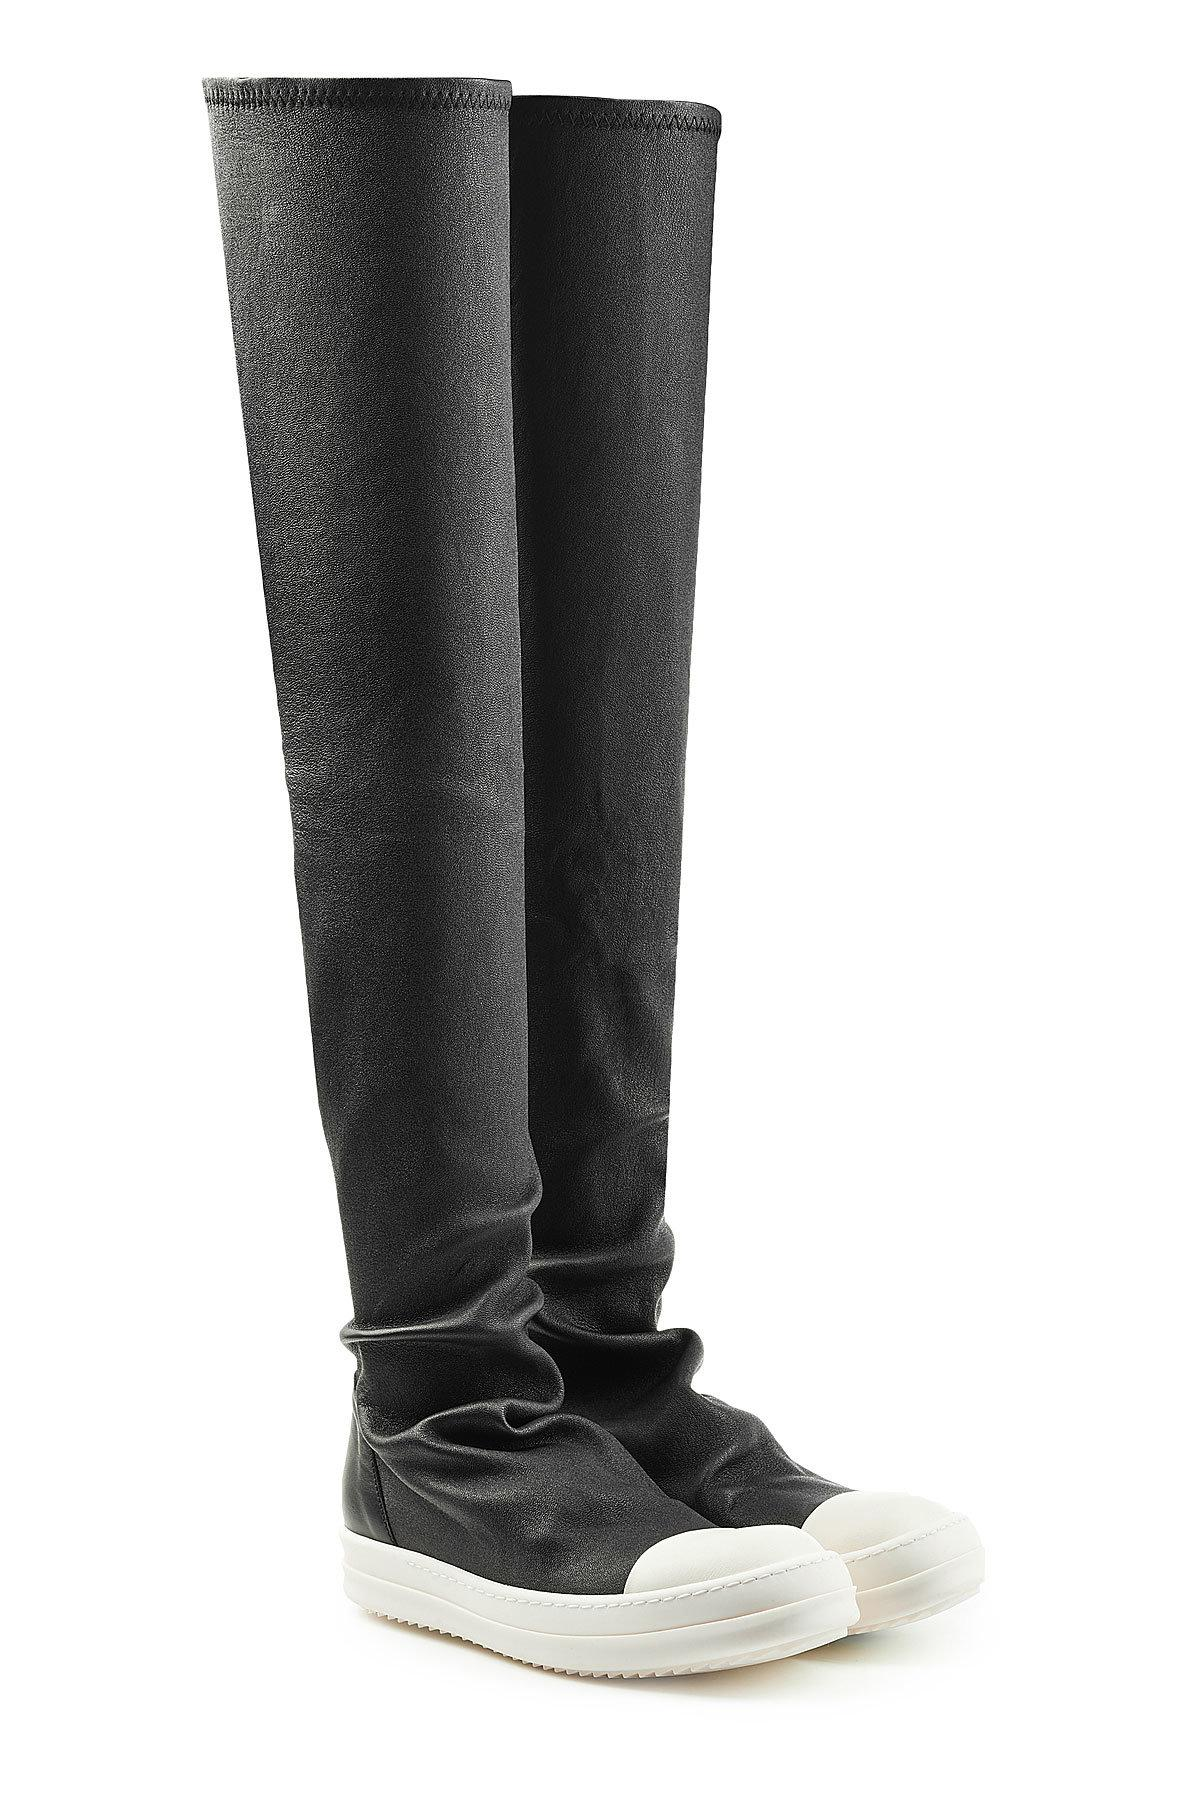 3d2e7501961 Rick Owens Leather Over-the-knee Boots in Black - Lyst